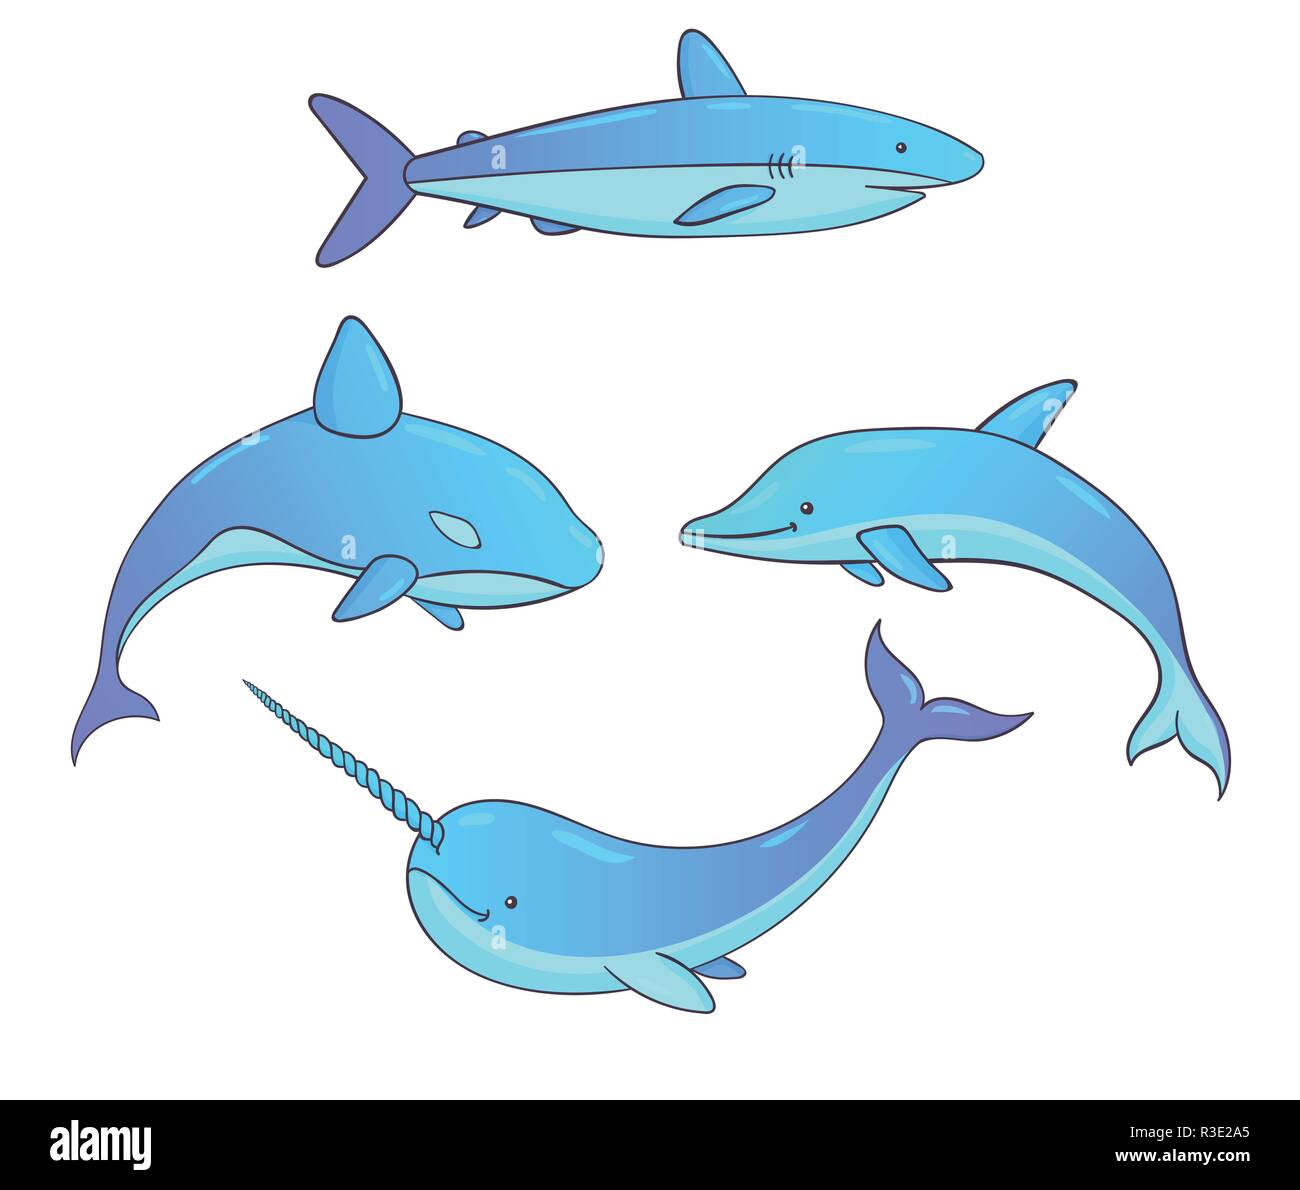 Set of vector underwater creatures with whales, shark, narwhal and dolphin. Marine animals isolated on the white background. - Stock Image